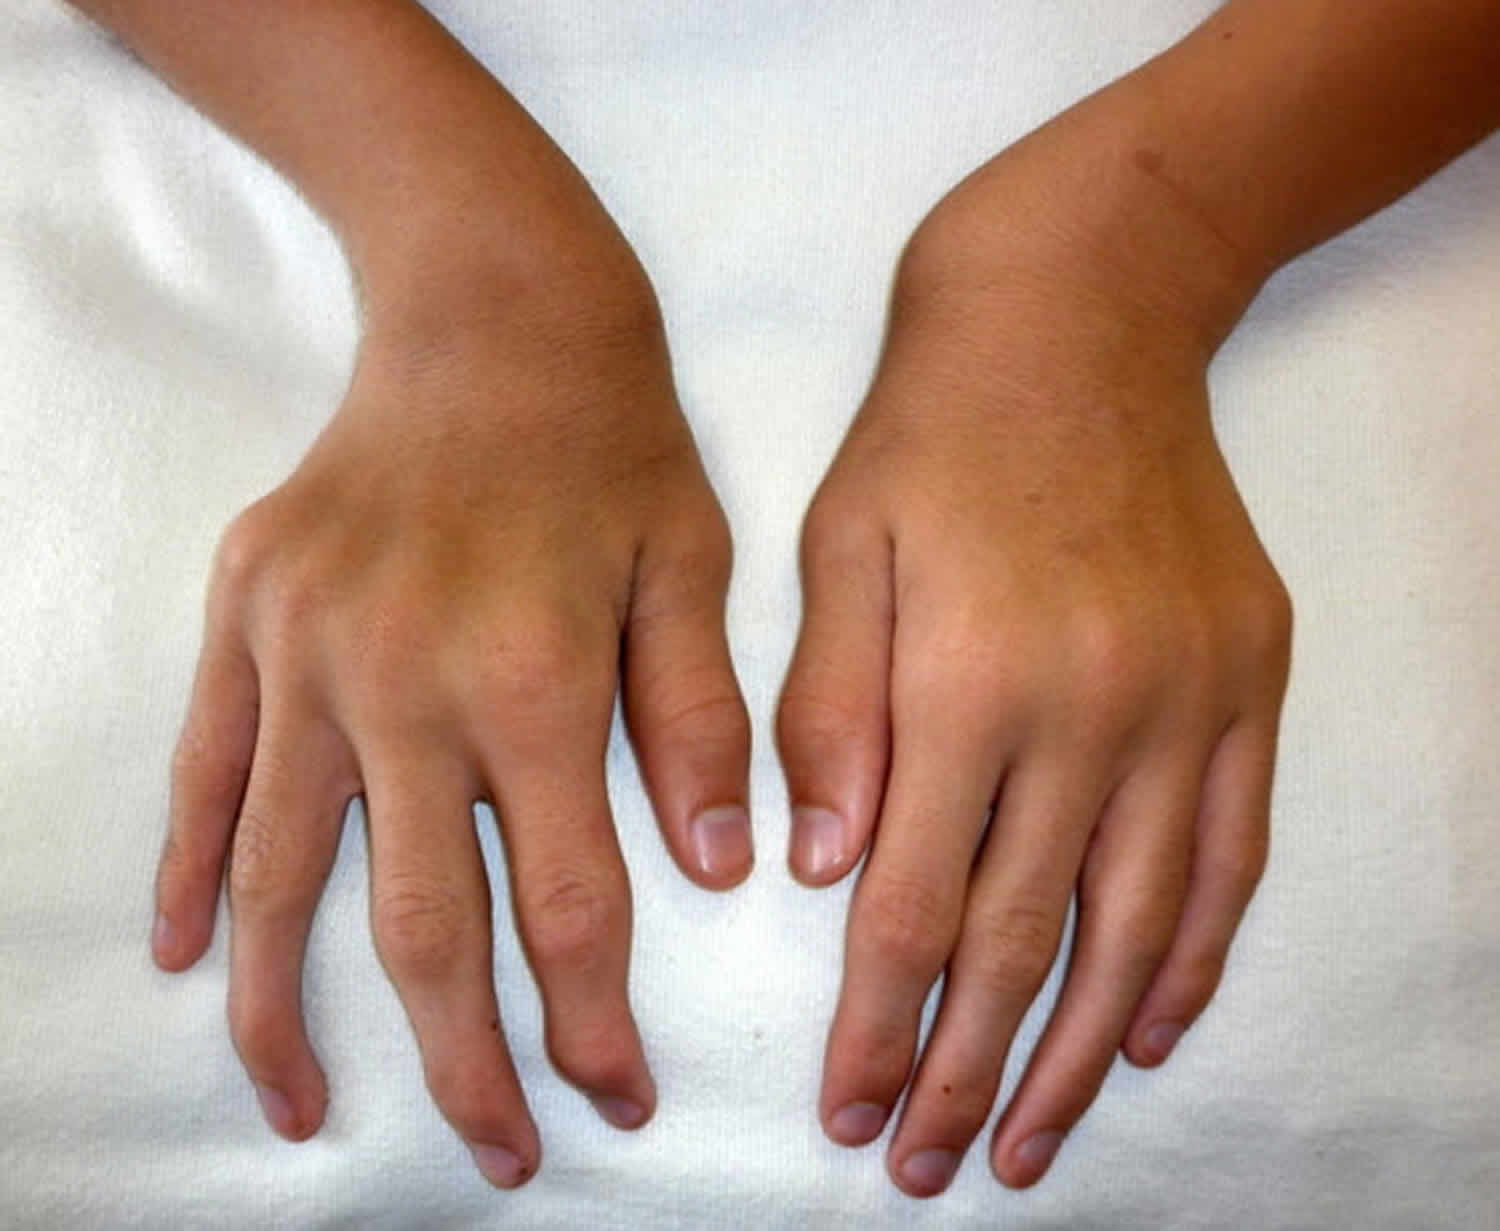 Morquio syndrome ulnar deviation of both wrists and joint enlargement